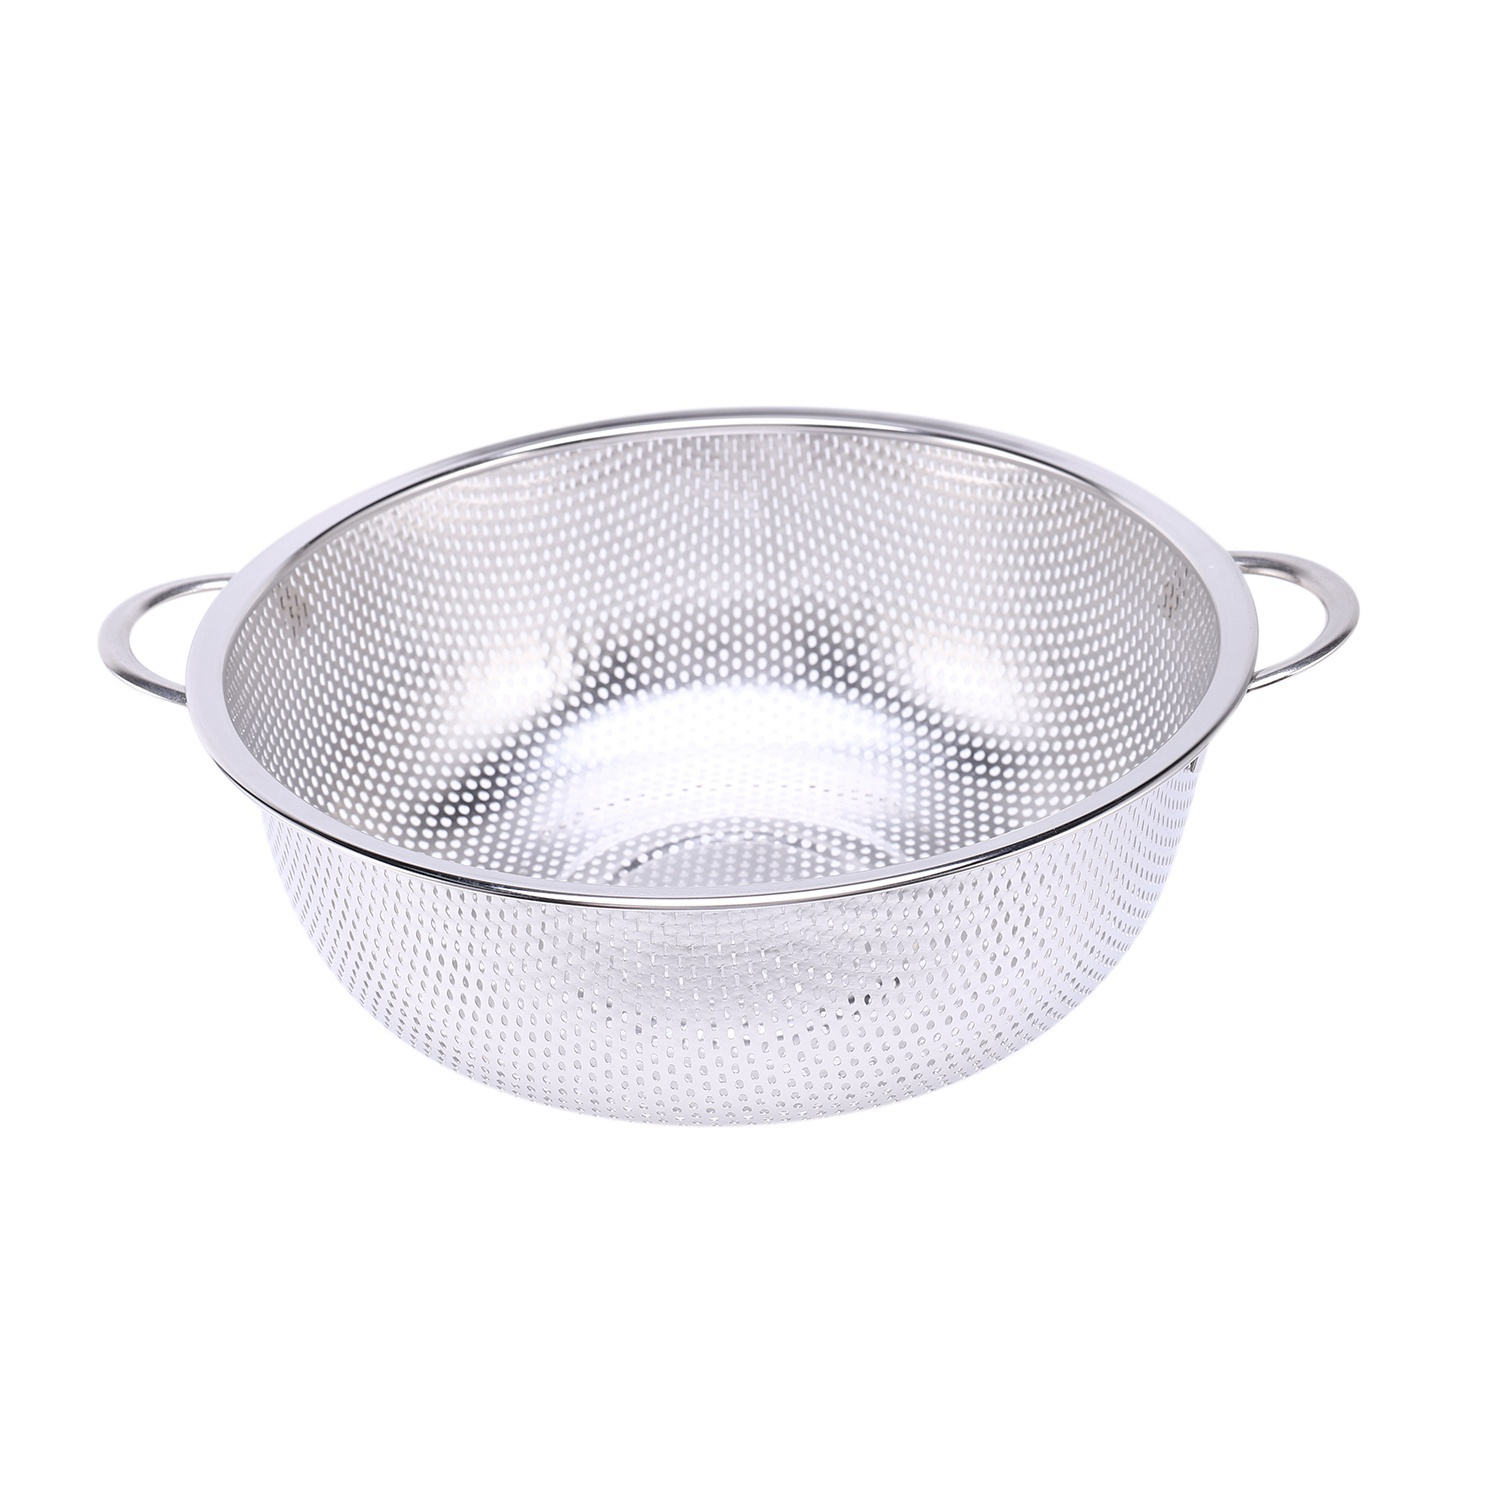 thumbnail 8 - Stainless Steel Colanders With Handle,Colander Perforated Strainer For Kitc D1Z4